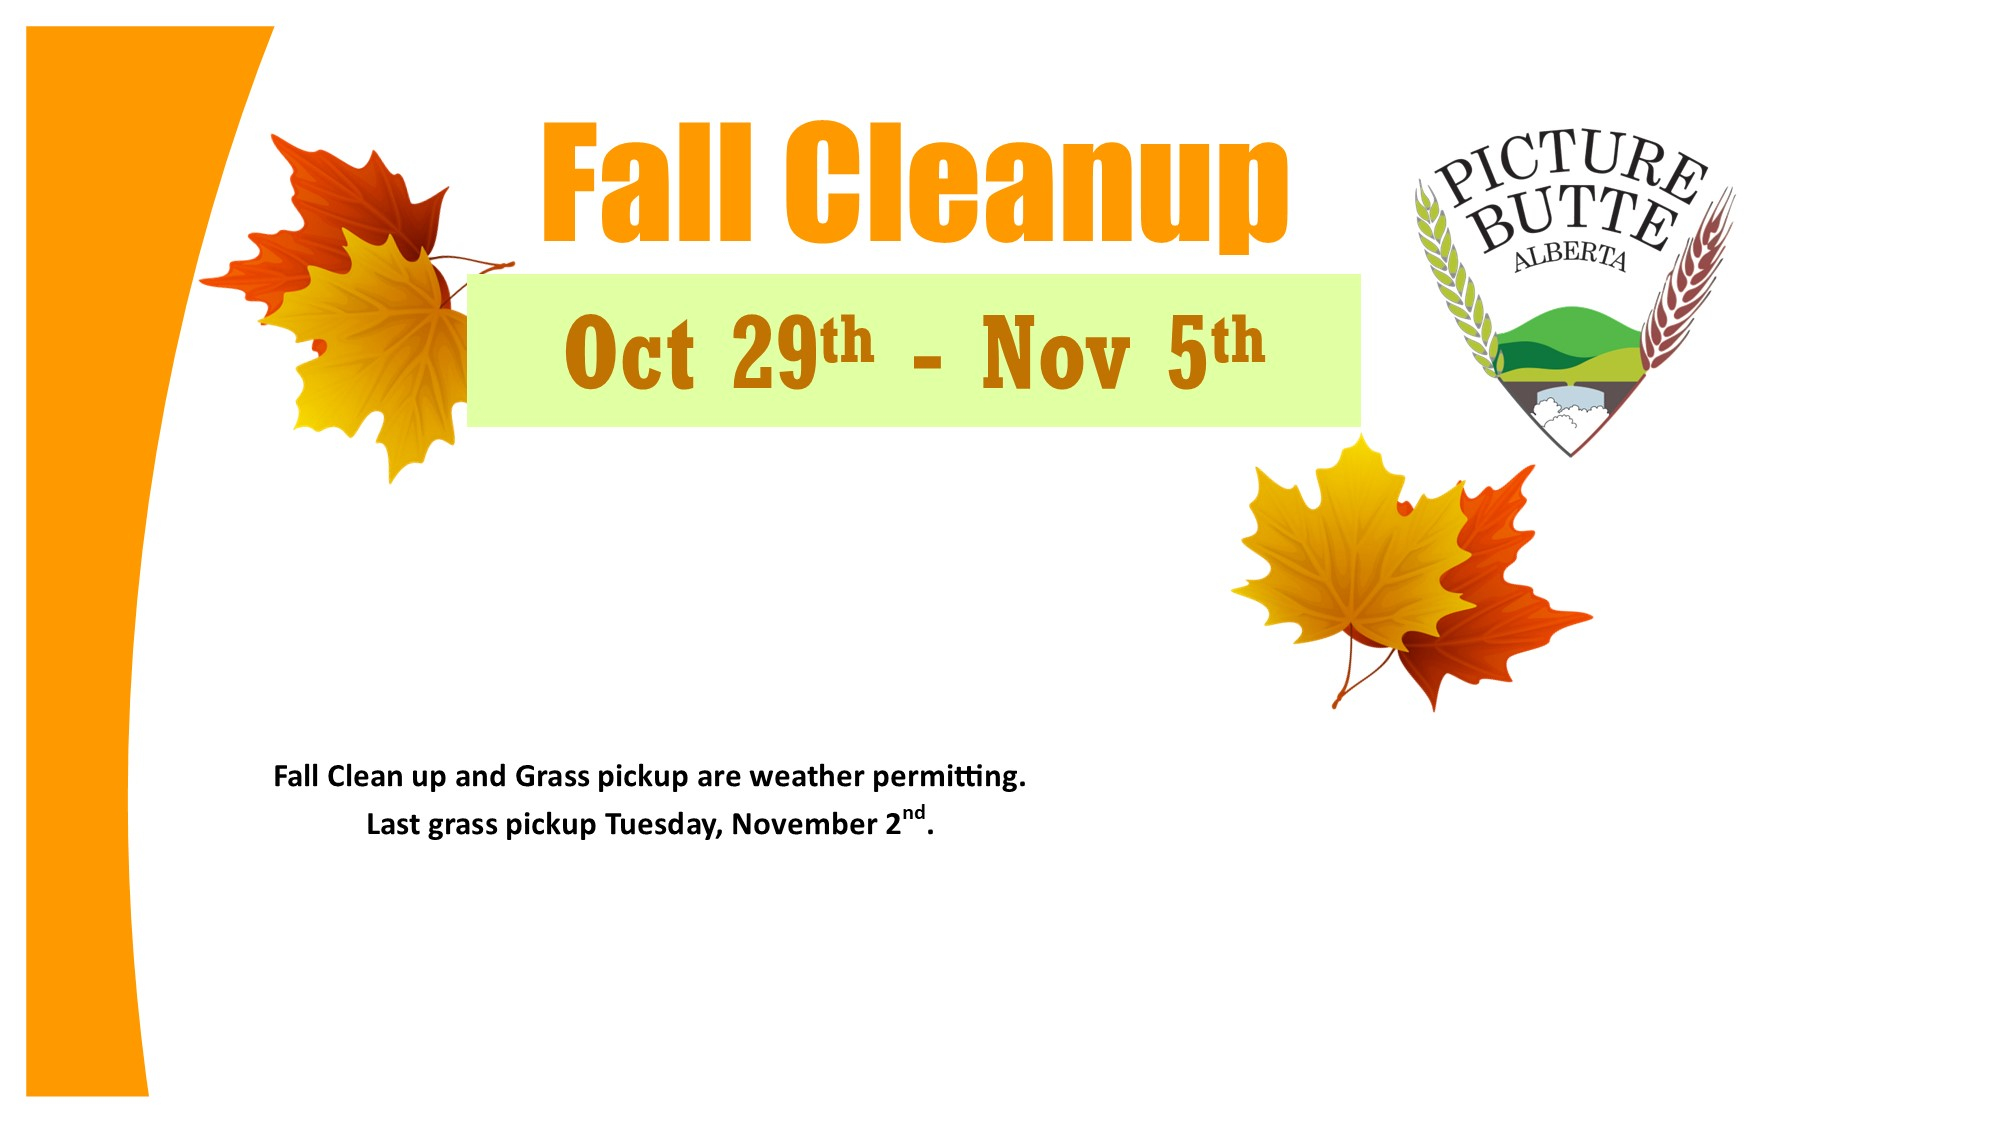 <div id=slideshow_title>Fall Cleanup</div> <br>Click photo for more details.